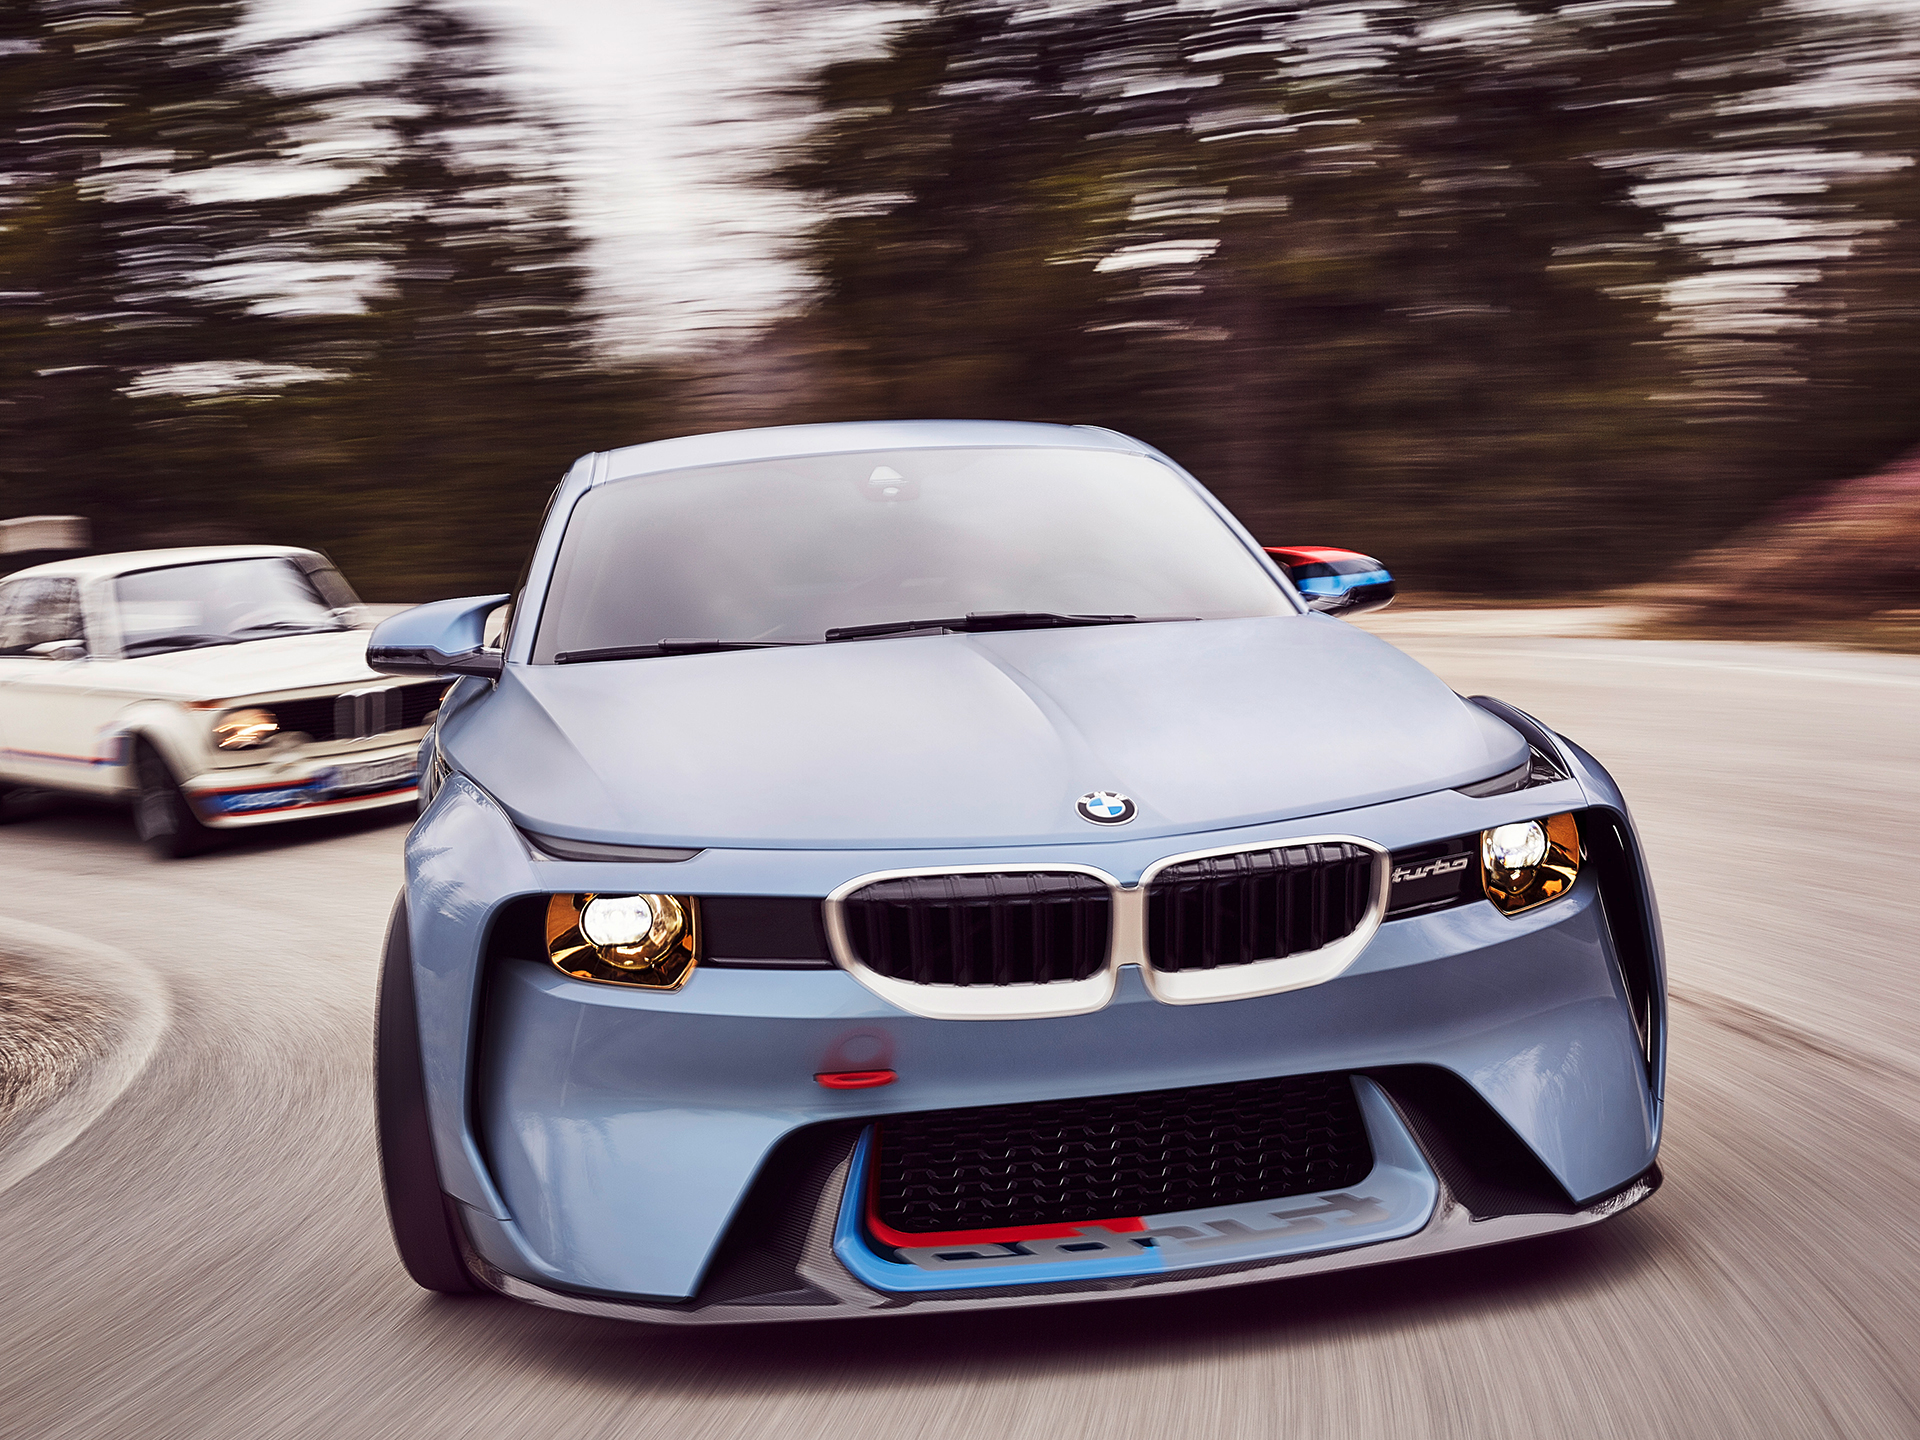 BMW 2002 Hommage - 2016 - front / avant